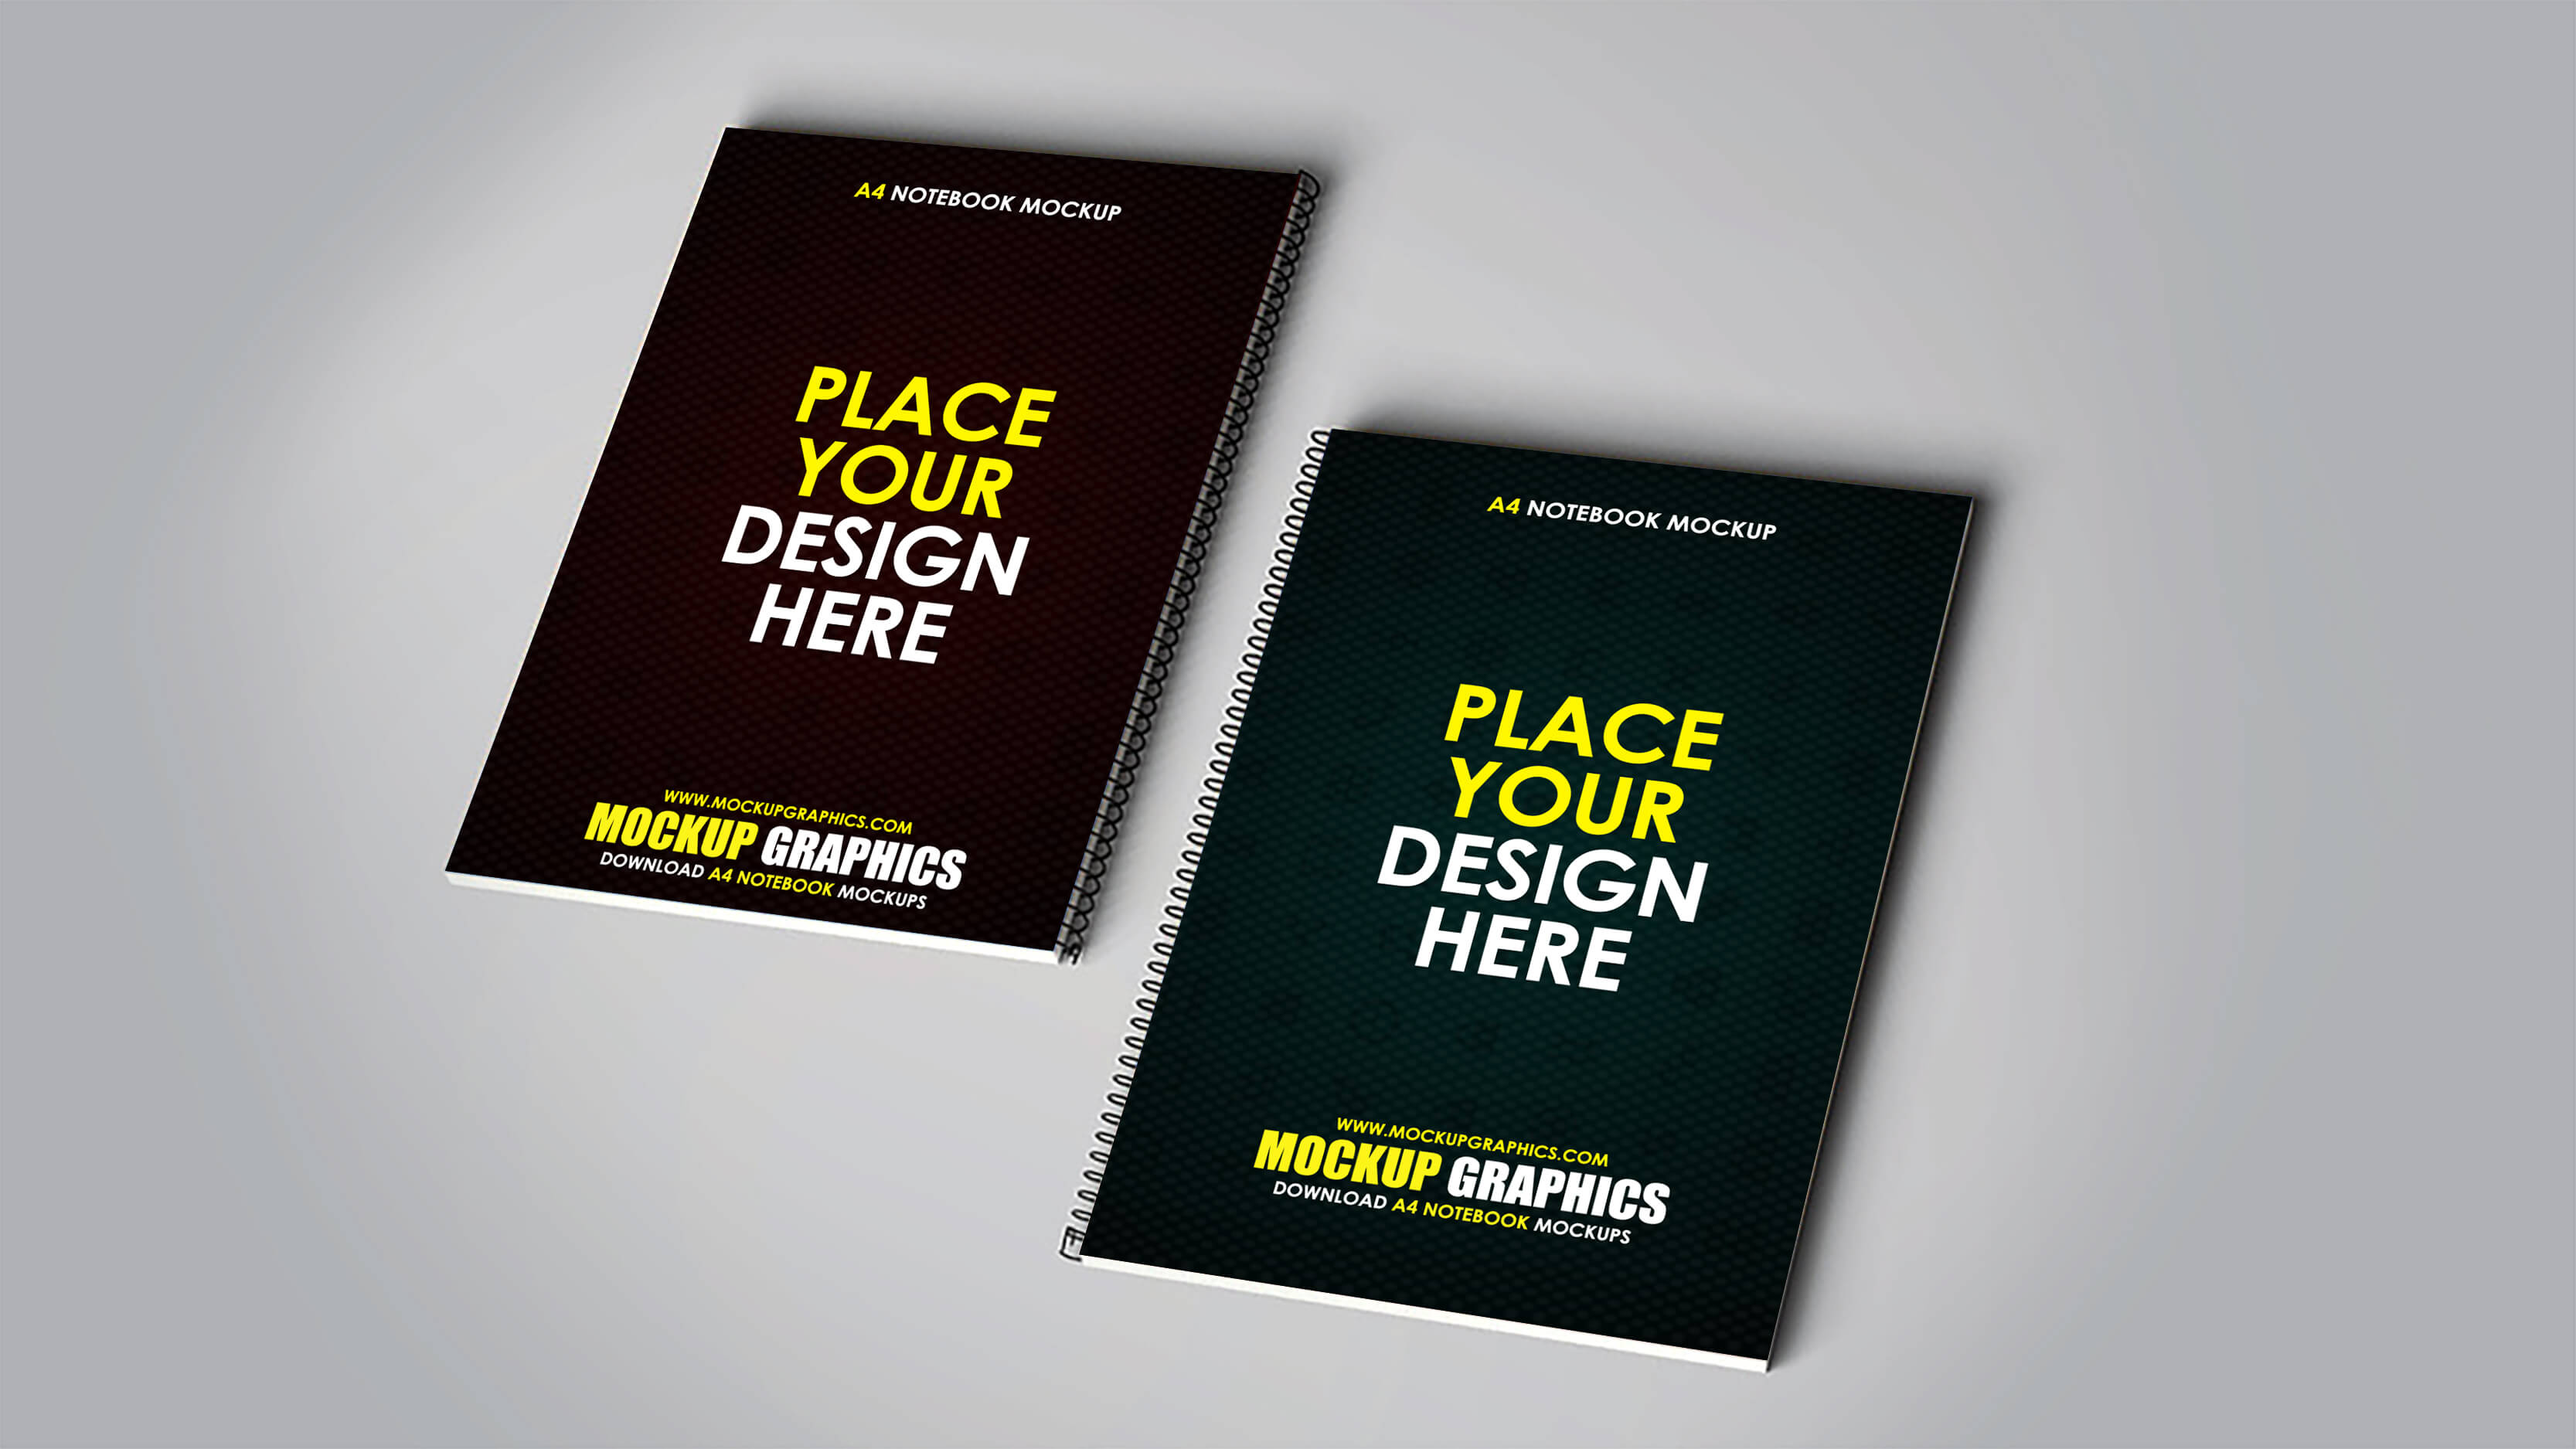 a4-note-book-mockup-www.mockupgraphics.com